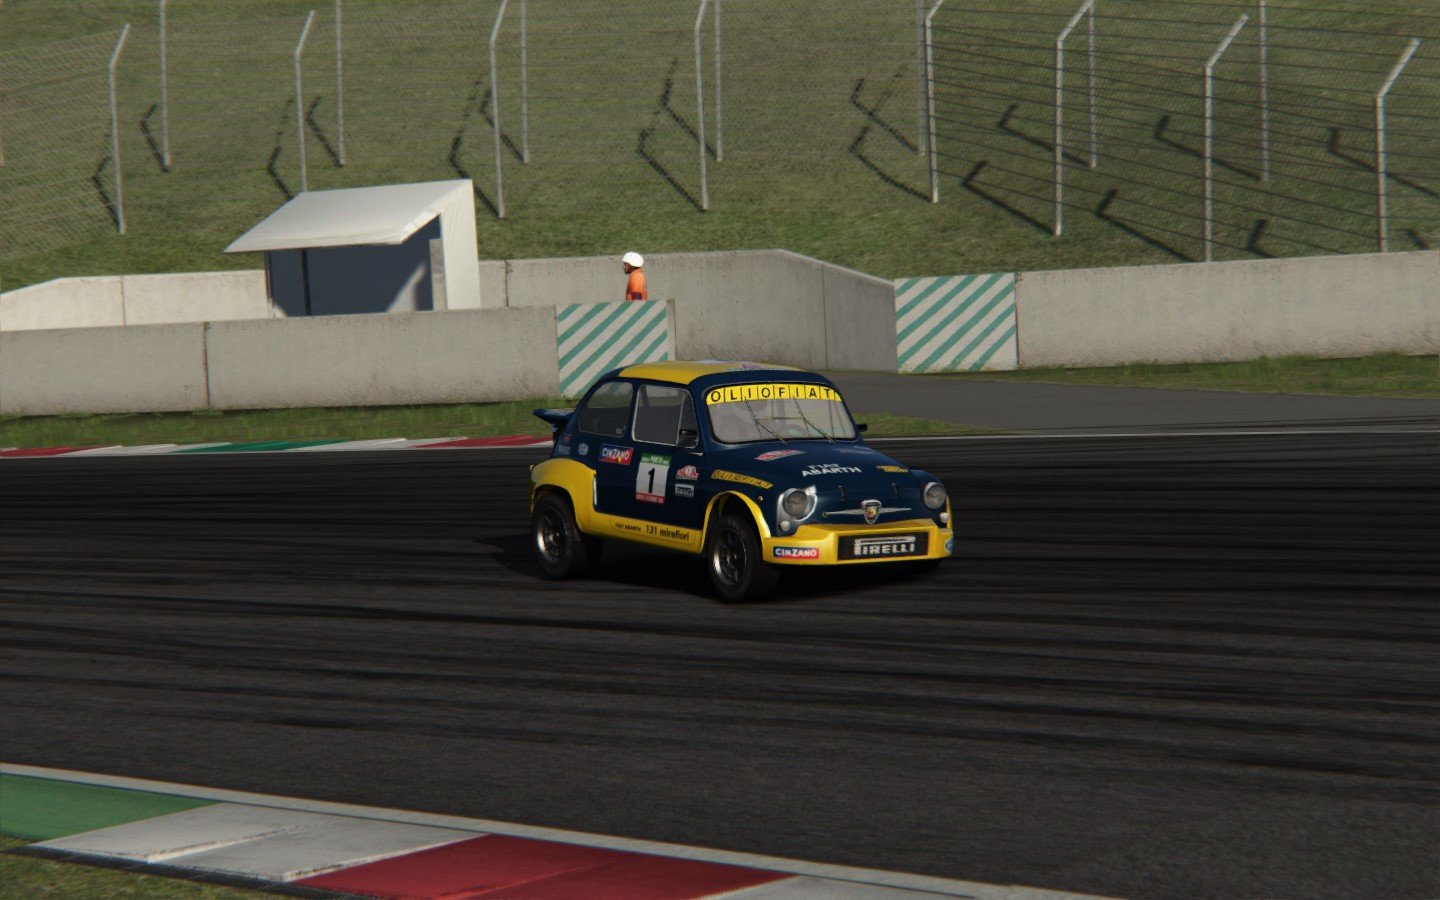 Screenshot_abarth_1000tc_mugello_22-1-116-23-12-12.jpg